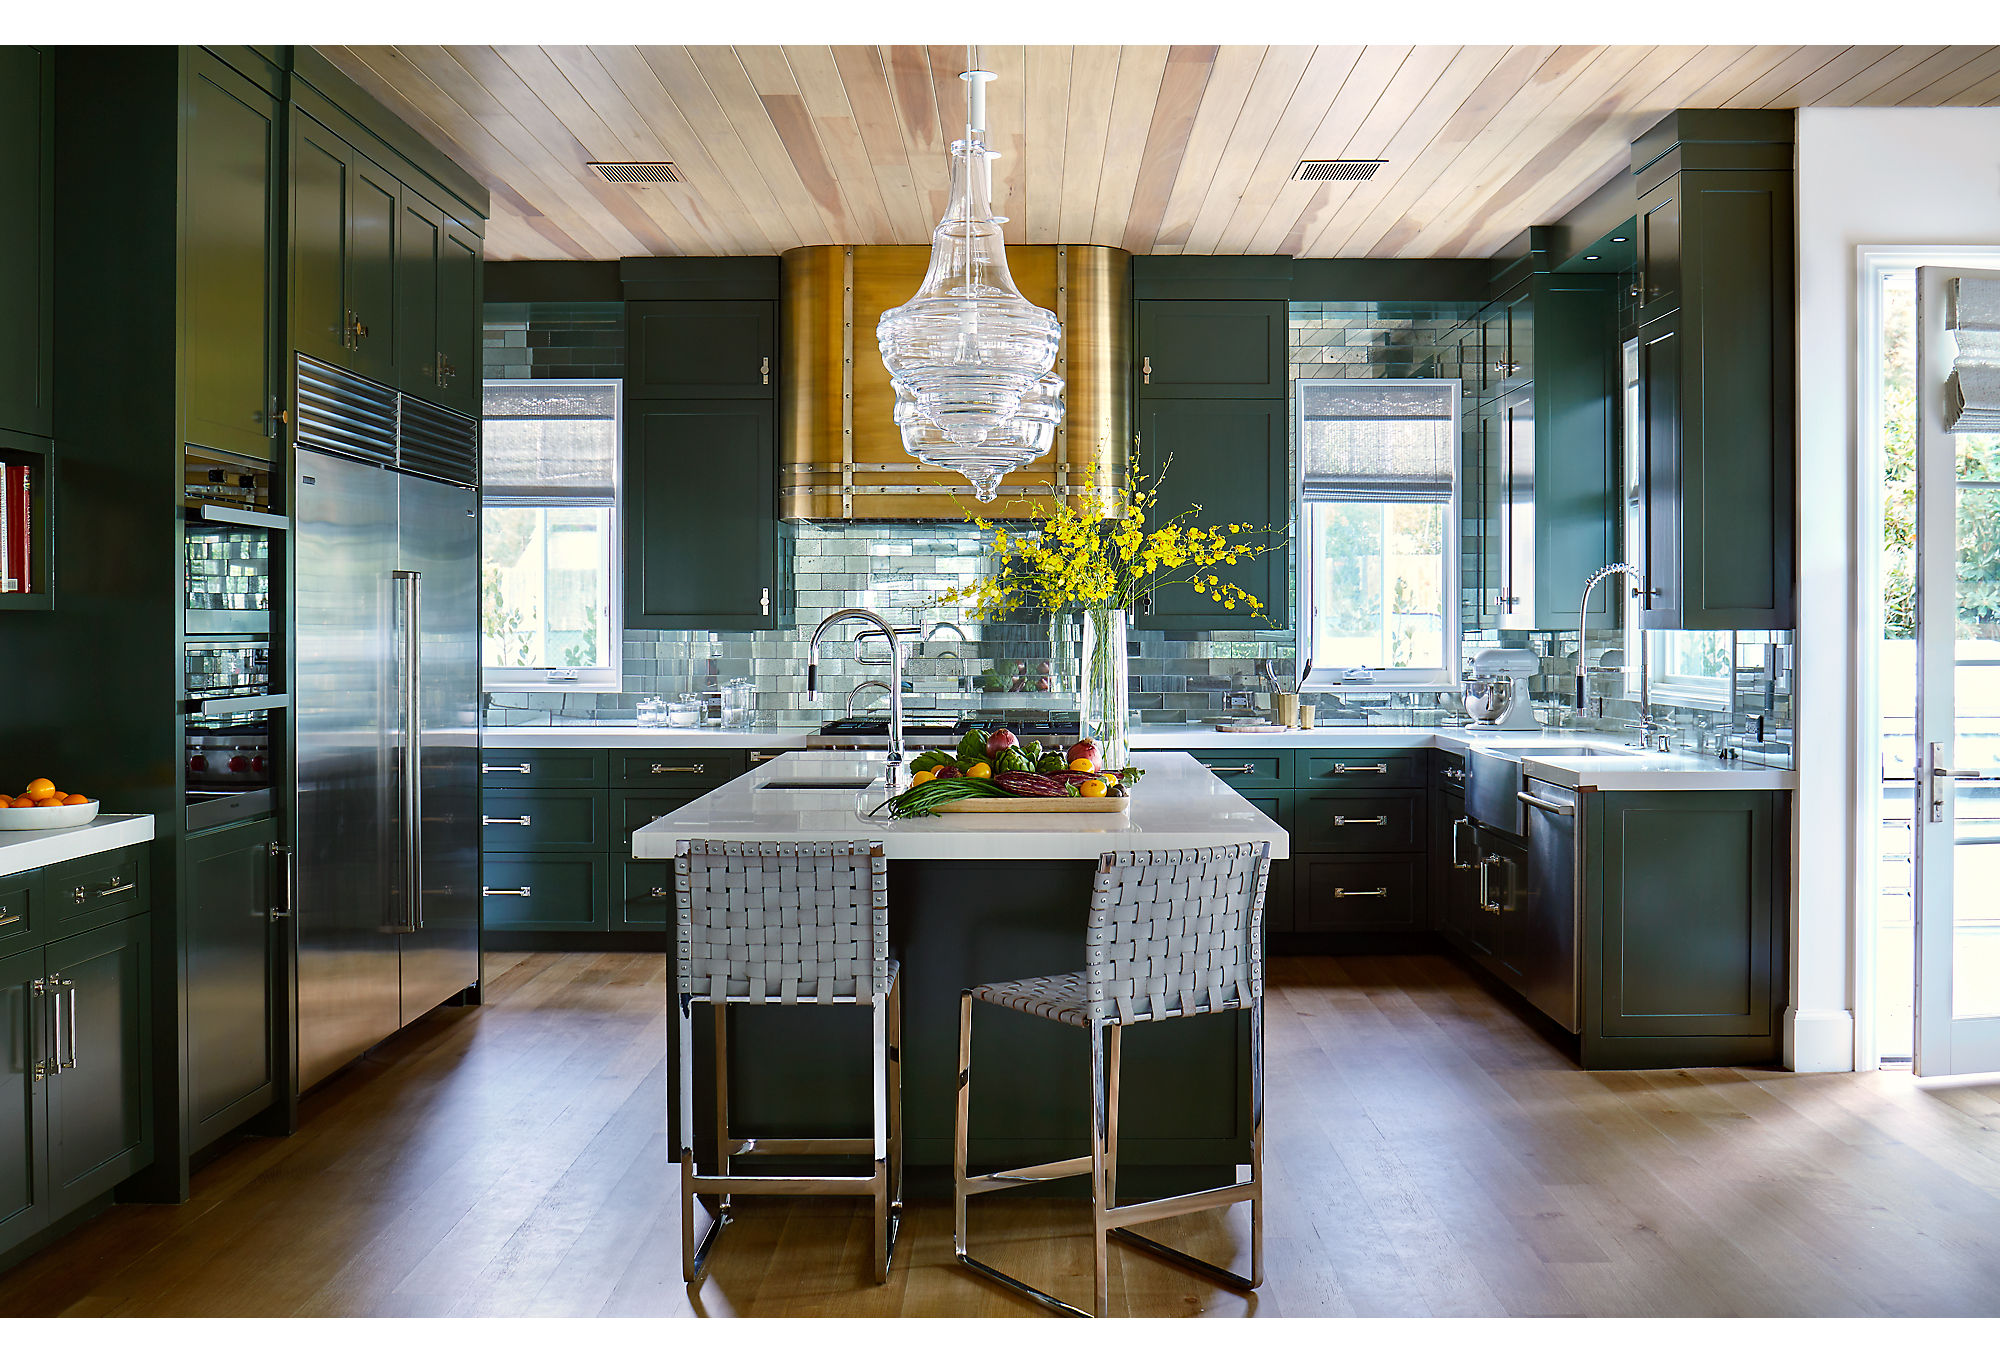 """Glass subway tiles in the kitchen reflect the clients' love of New York City. The hood was a special addition by Adam. """"I wanted it to look like an old metal truck,"""" he says."""